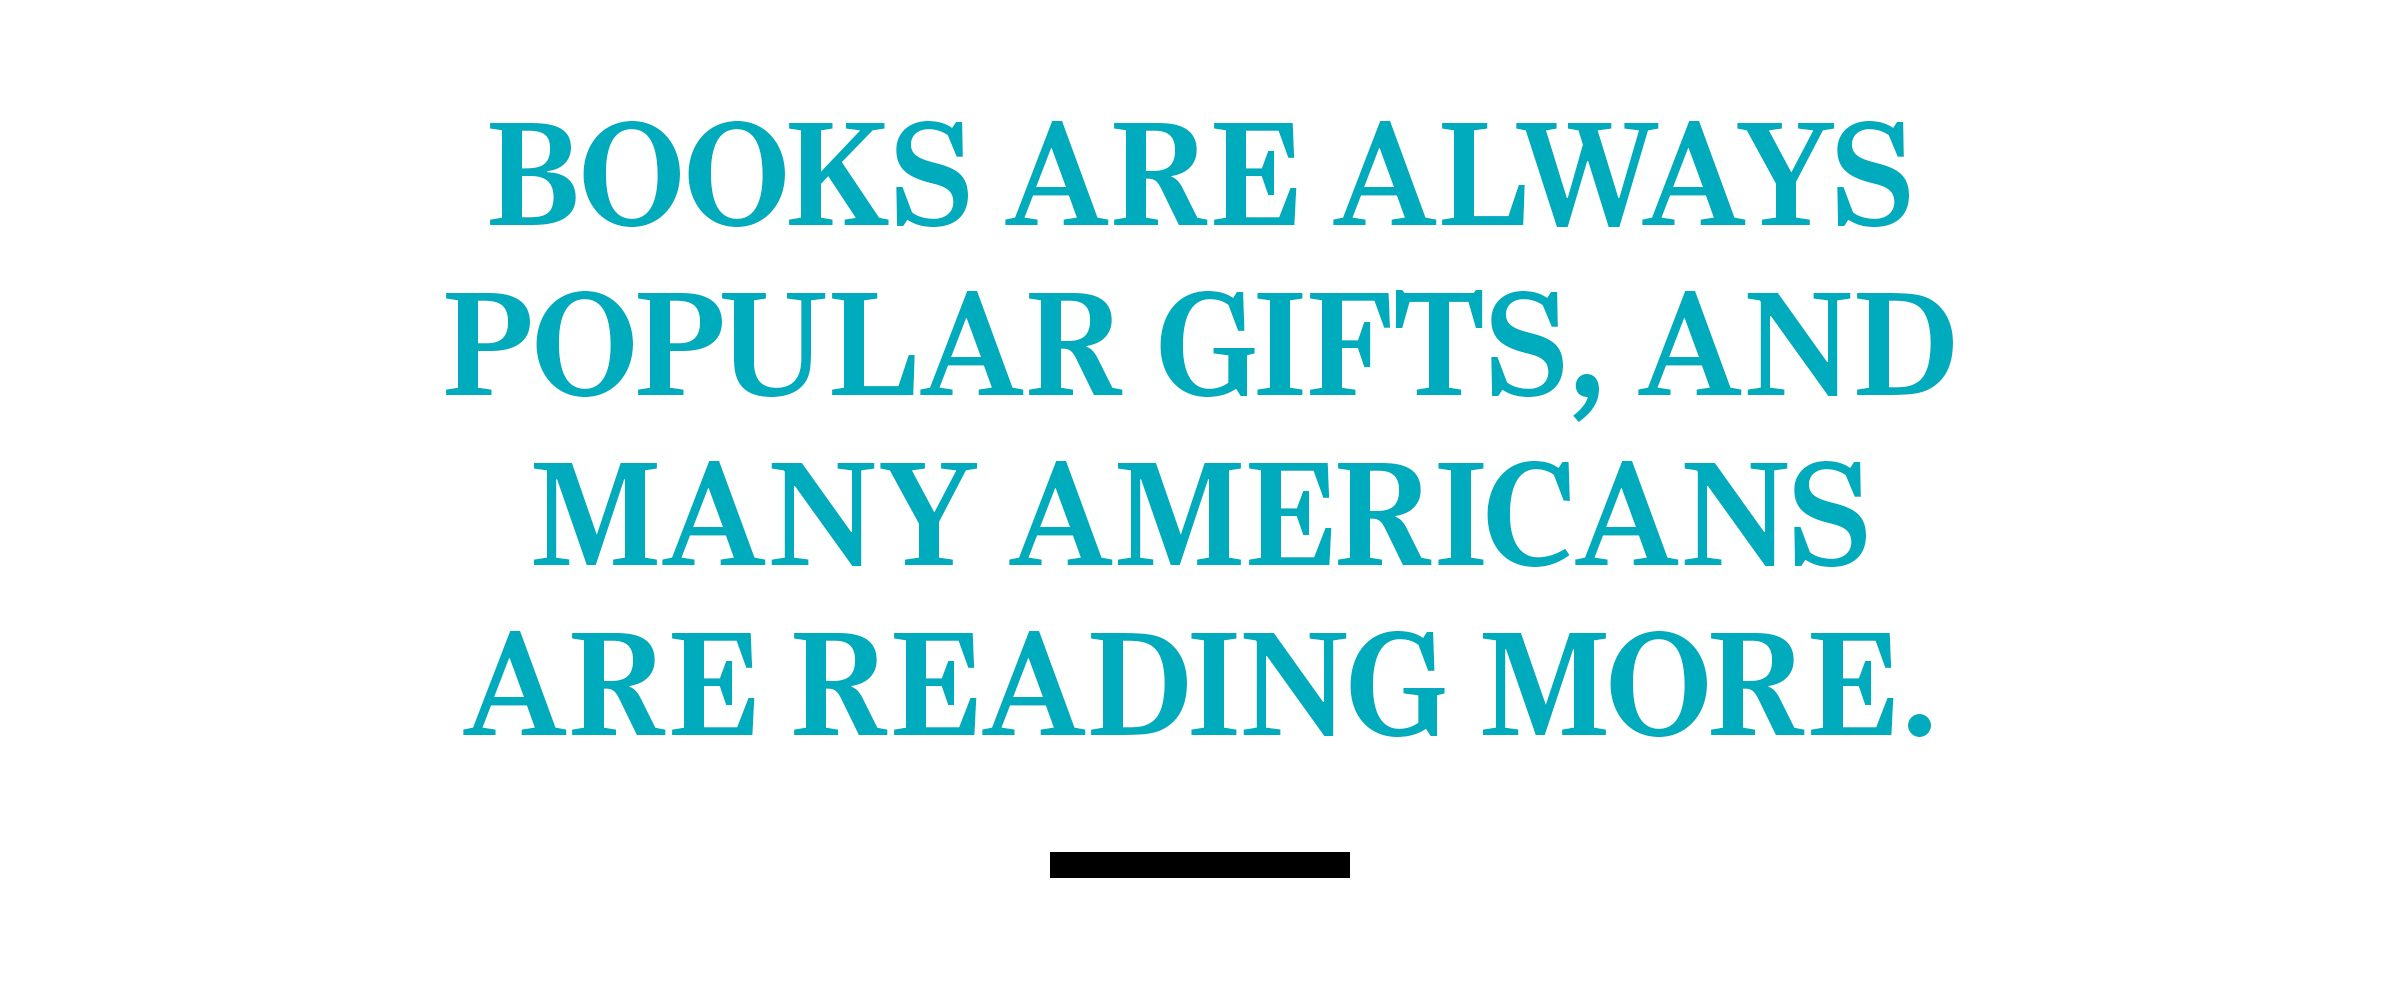 text: Books are always popular gifts, and many Americans are reading more.